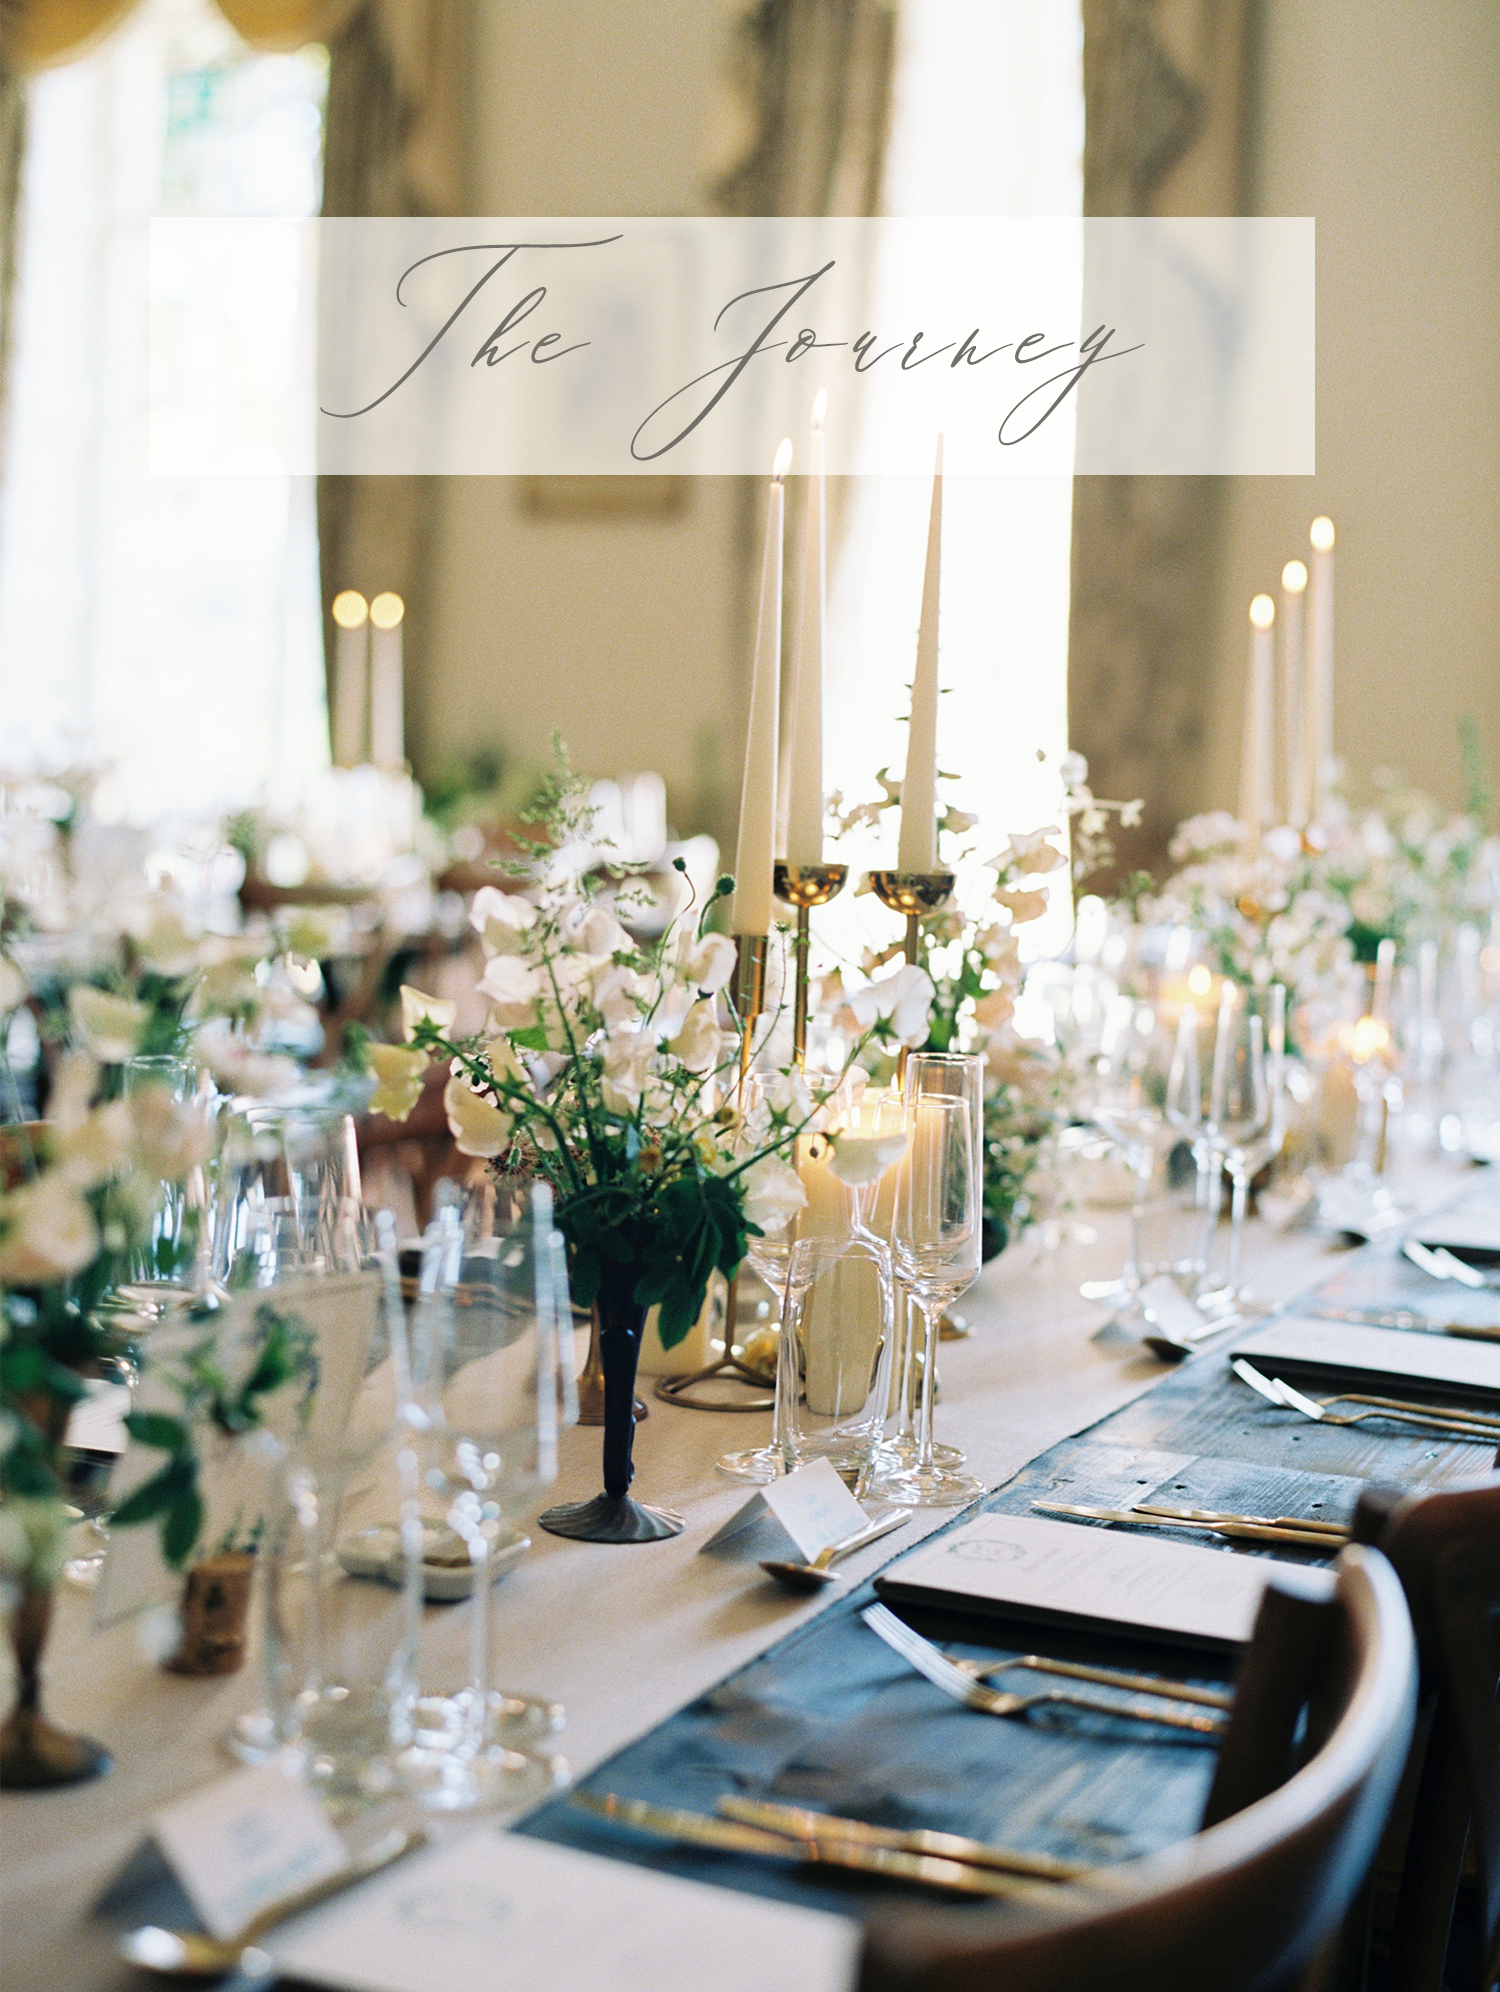 Lily & Sage | Luxury Wedding Planner | Wedding Planner UK Wedding Planner Cotswolds Wedding Planner London Wedding Planner Europe Cotswolds Wedding Planner UK Wedding Planner Wedding Stylist | Home Page Image 2.png